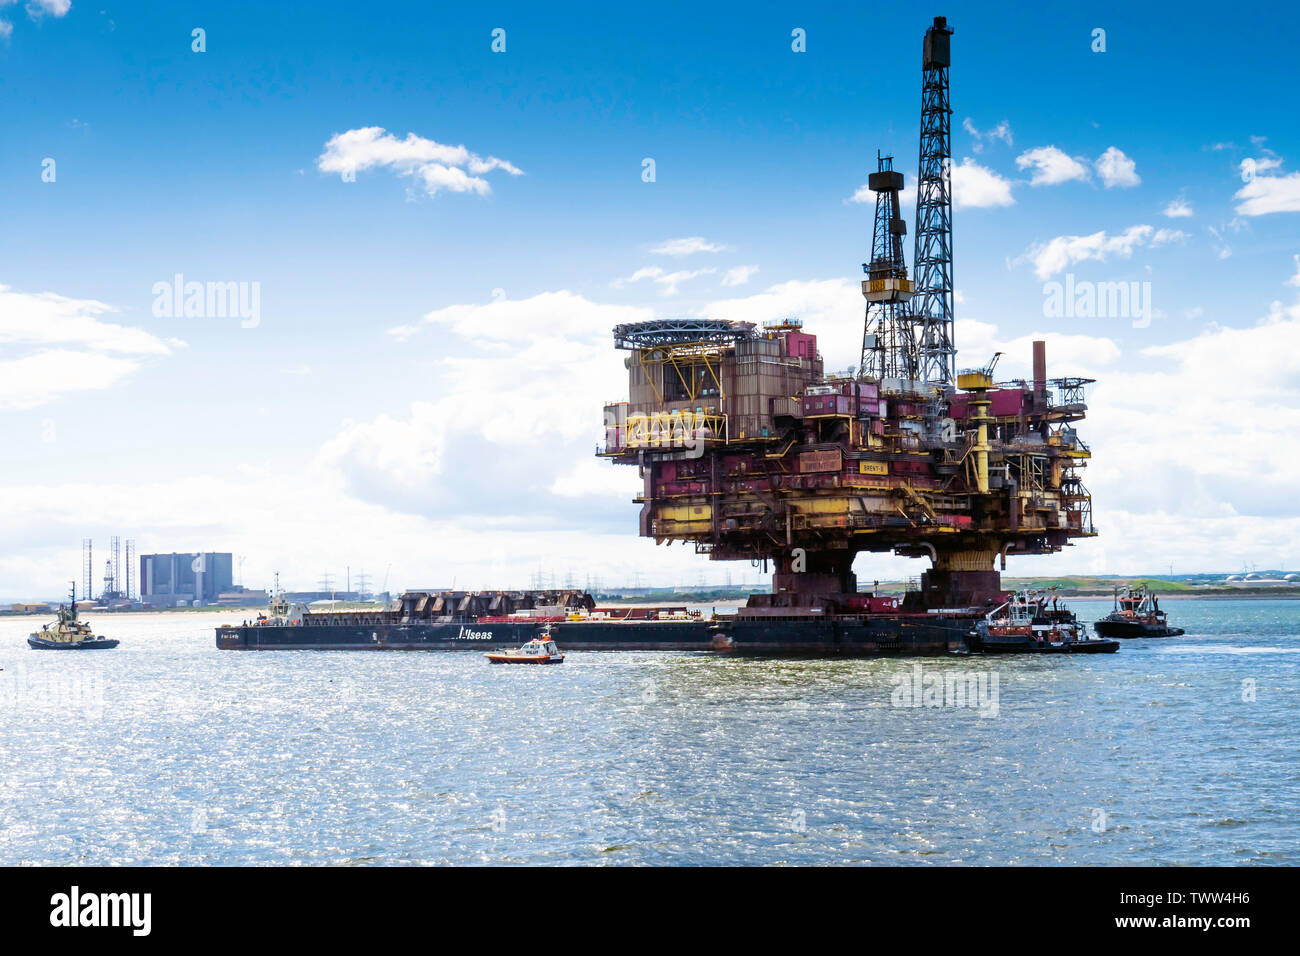 The topside of the Shell/Esso Brent Bravo platform arriving in the River Tees for recycling after 40 years service in the Northern North Sea - Stock Image